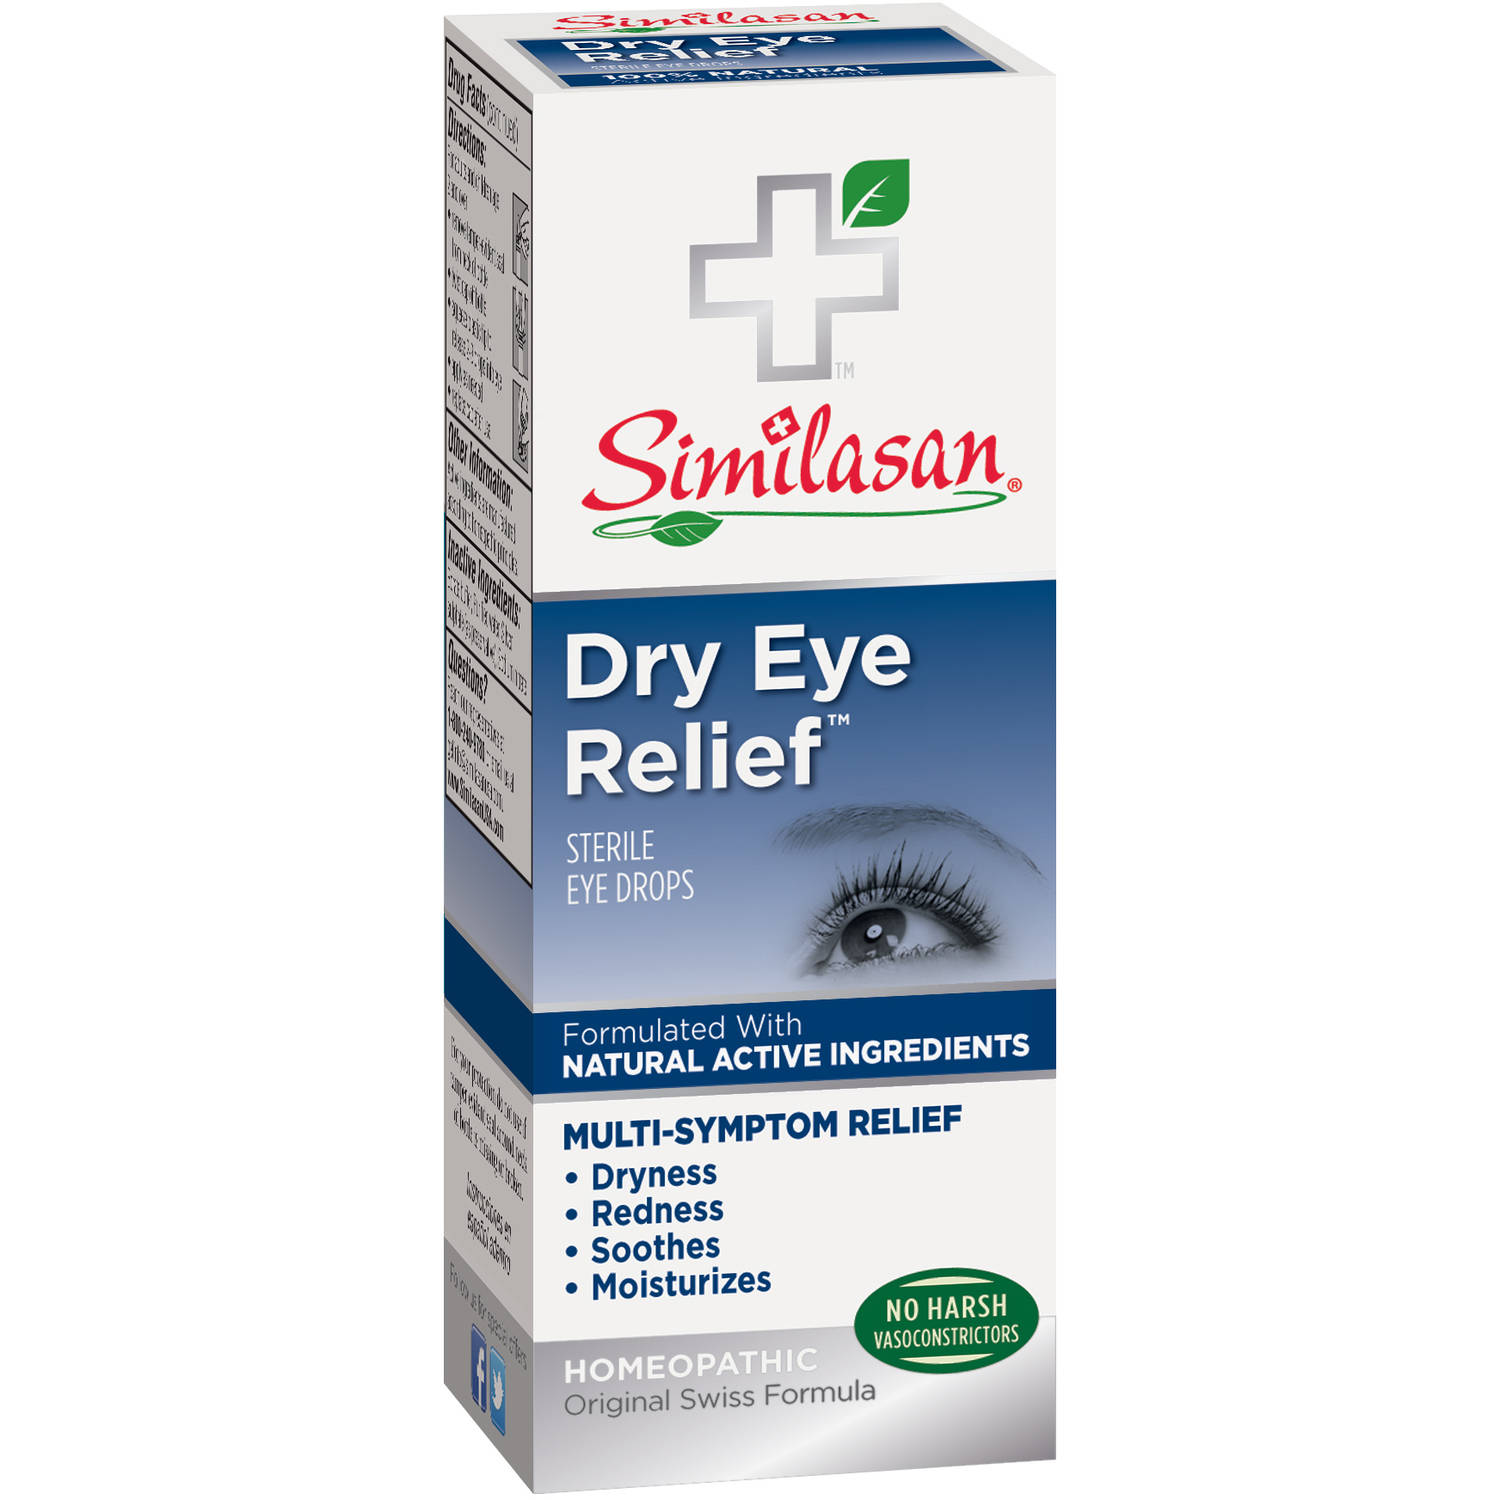 Similasan Healthy Relief Dry Eye Relief Eye Drops Eye Drops, 10 ml